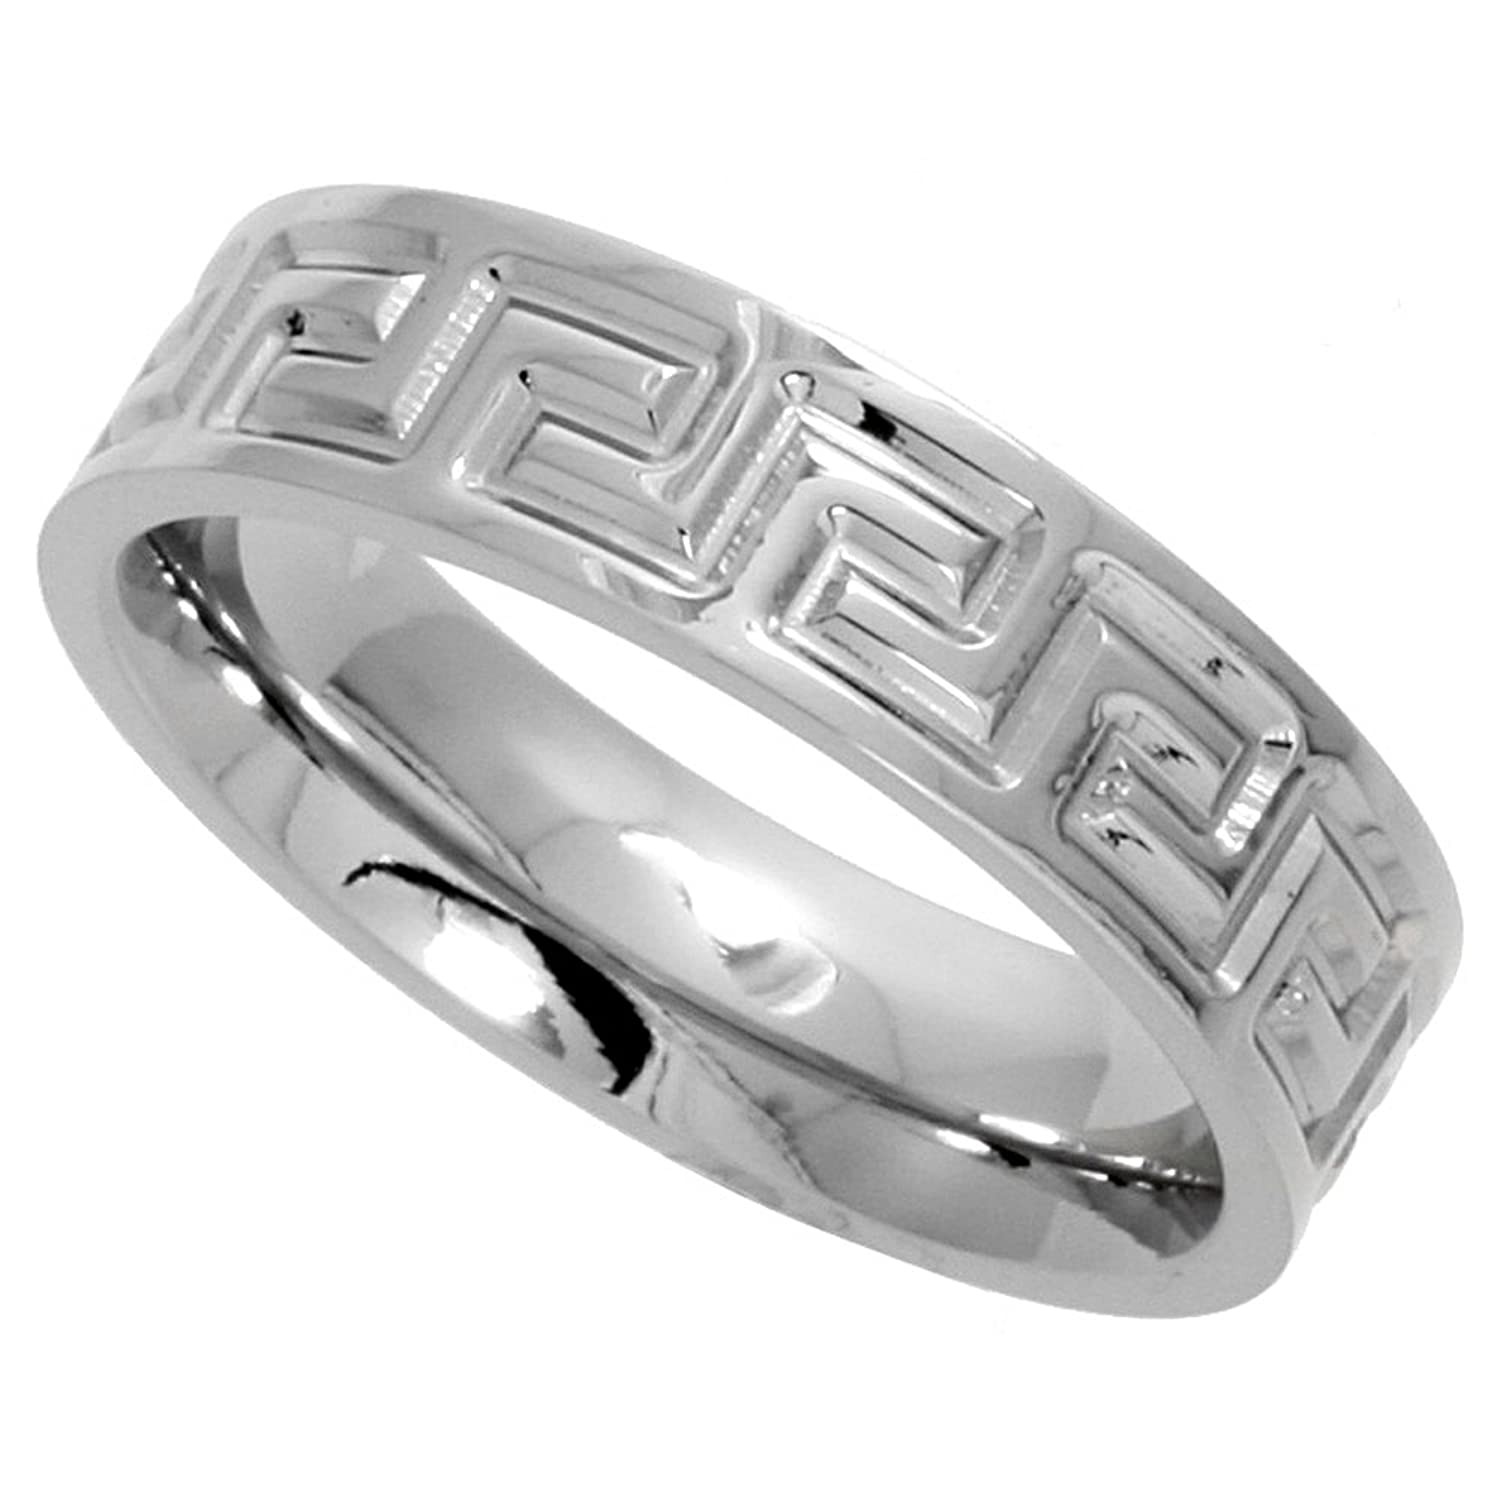 Bling jewelry greek key mens stainless steel band ringamazon surgical stainless steel greek key ring 6mm wedding band comfort fit sizes 6 biocorpaavc